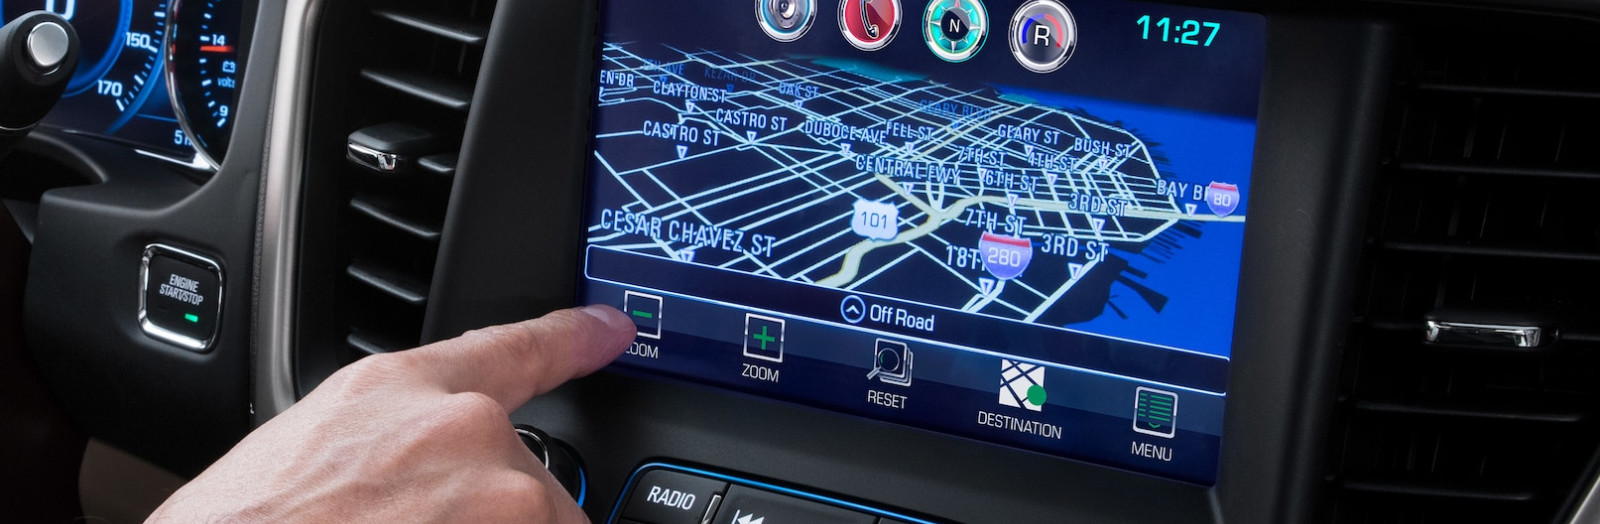 Intuitive Features in the GMC Acadia